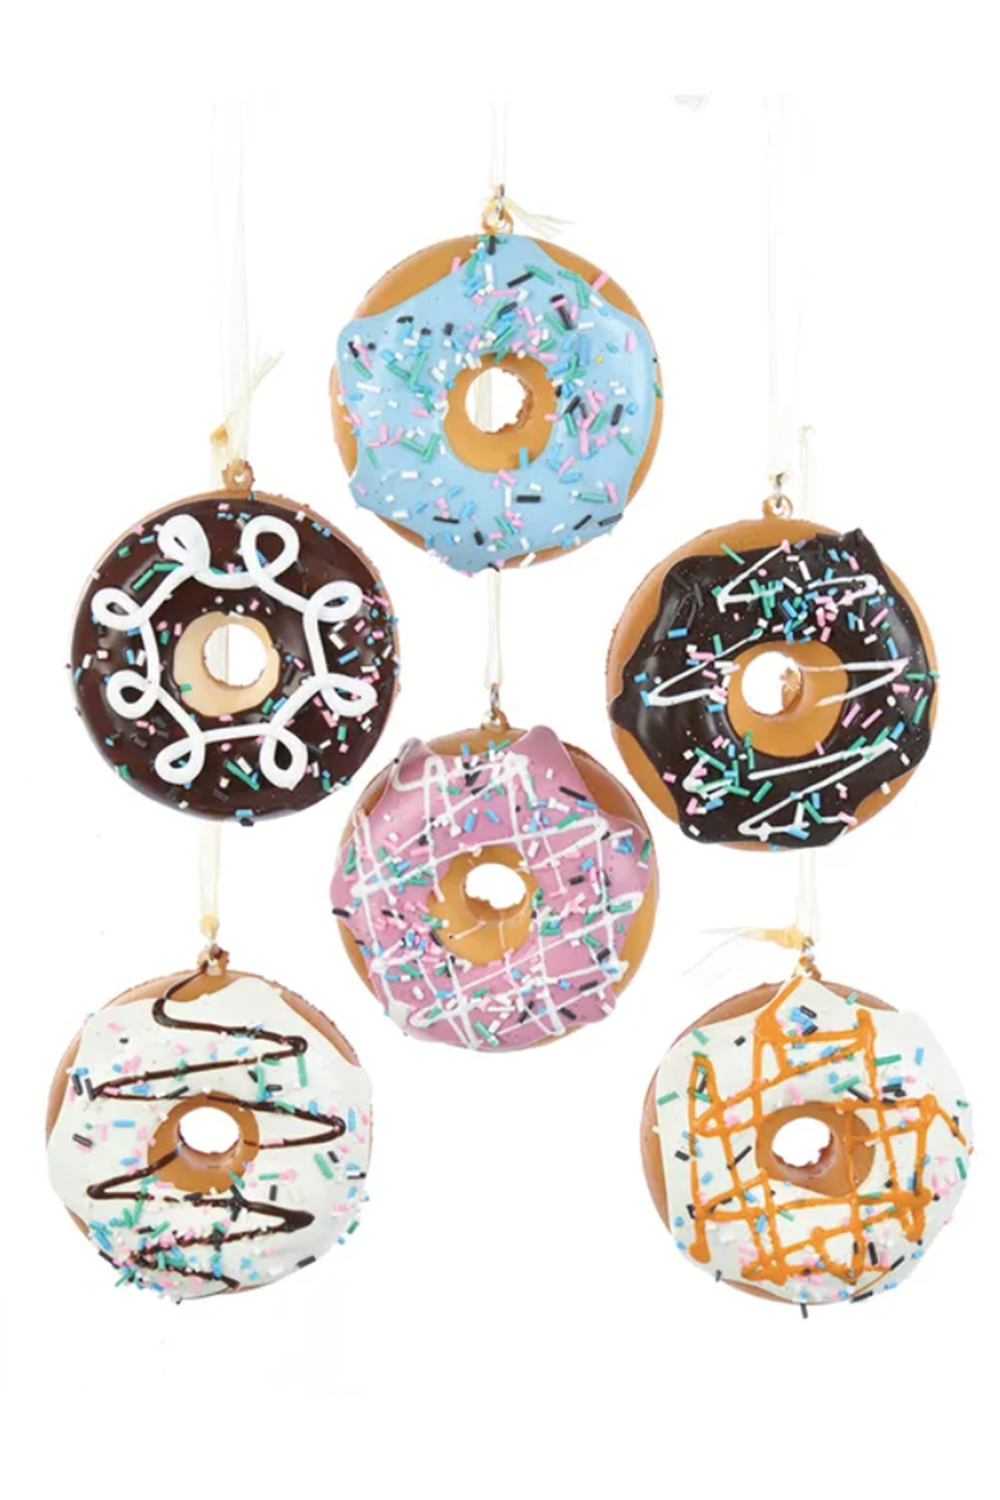 Squishy Ornament - Donut